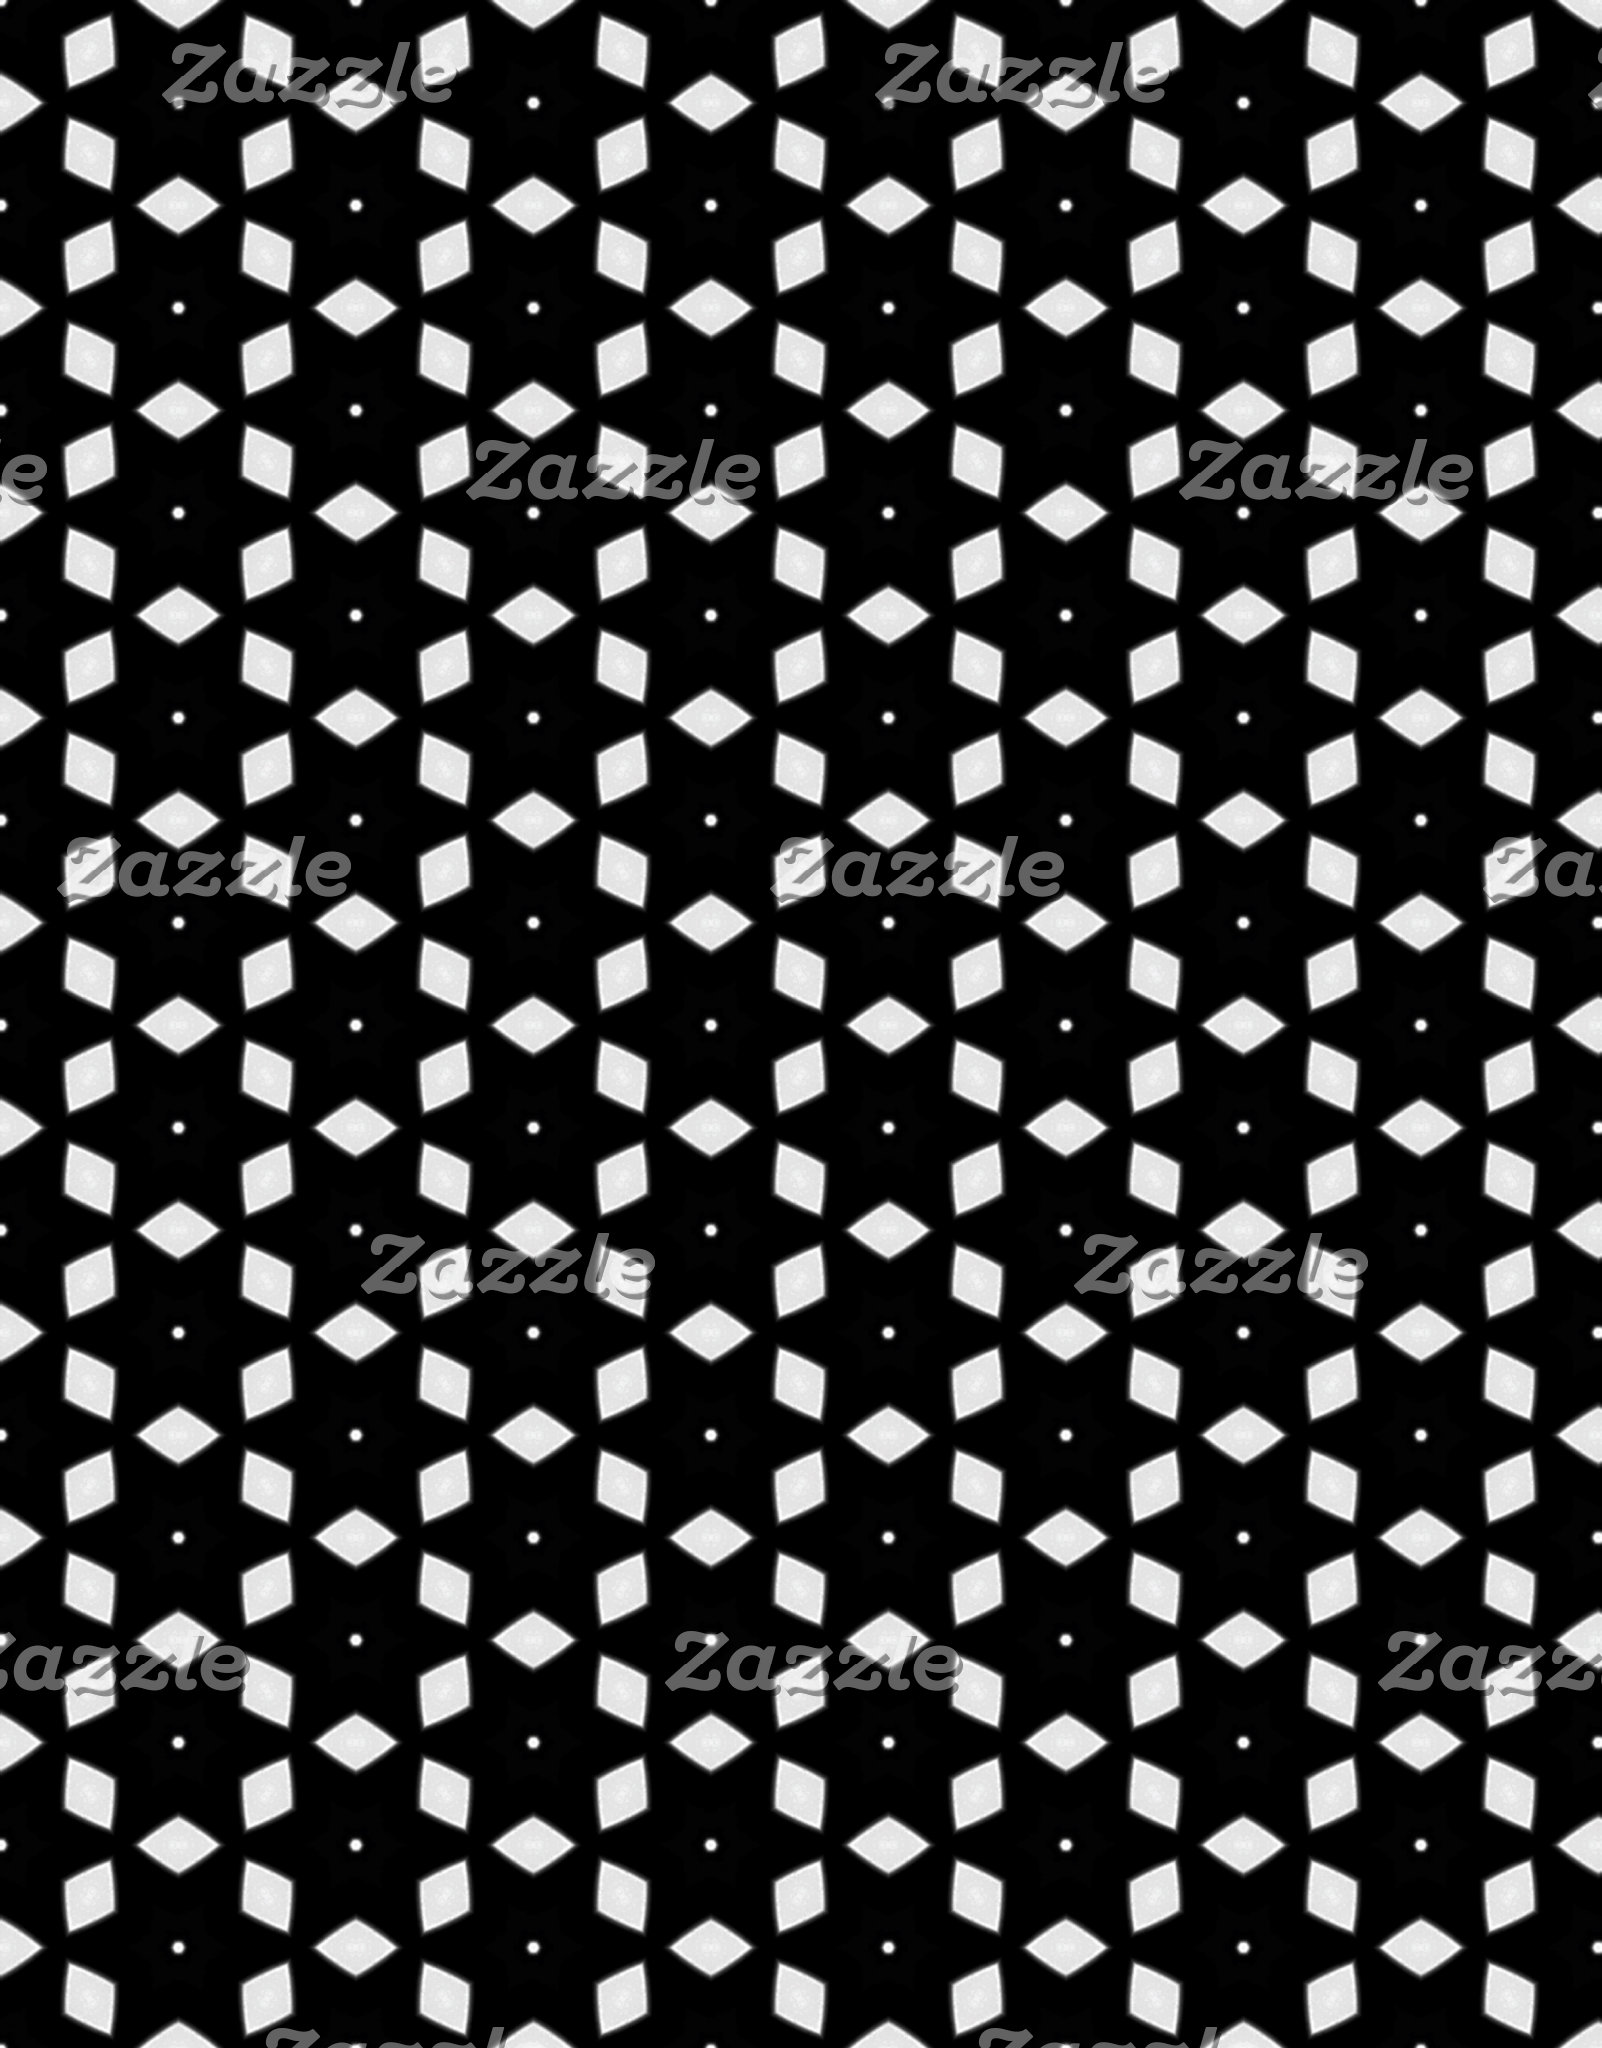 Black and White Patterns | Diamonds and Stars I